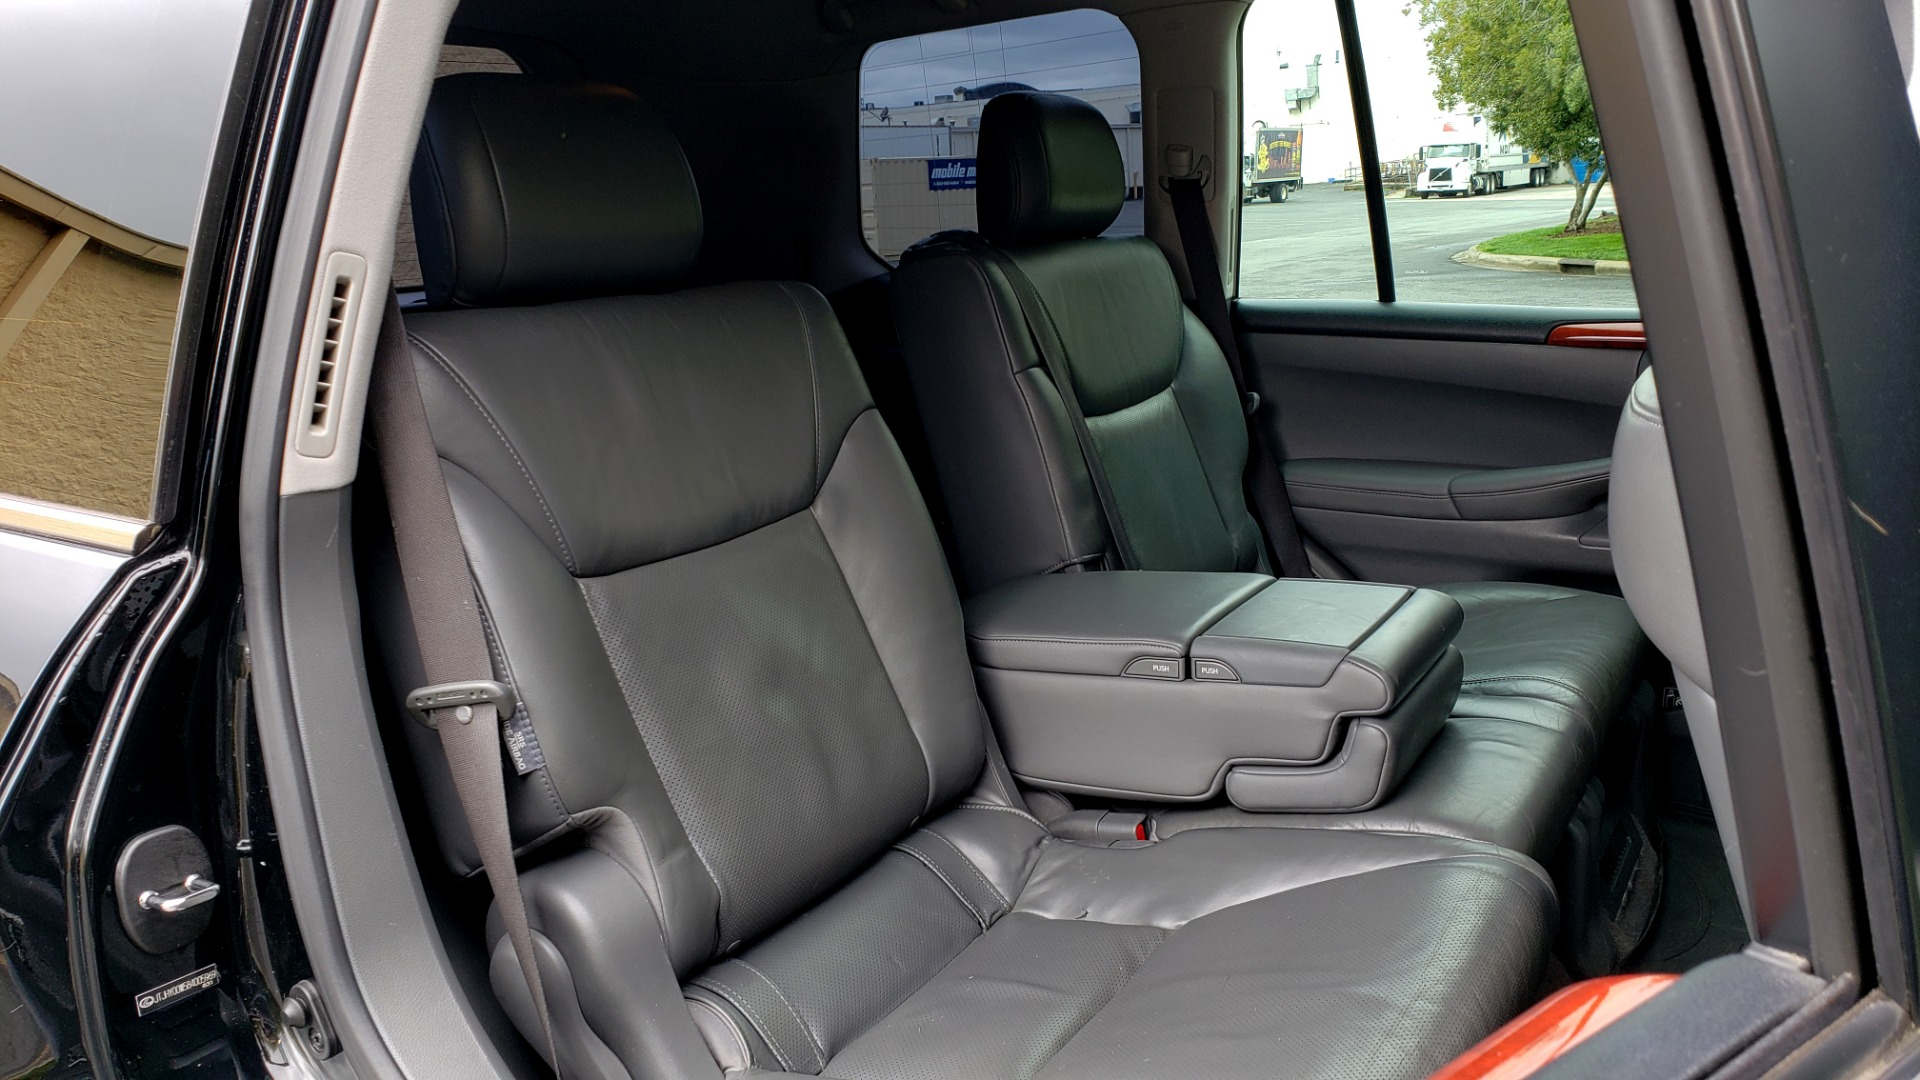 Used 2008 Lexus LX 570 4WD / TECH PKG / NAV / SUNROOF / MARK LEVINSON / PARK ASST for sale $22,995 at Formula Imports in Charlotte NC 28227 78